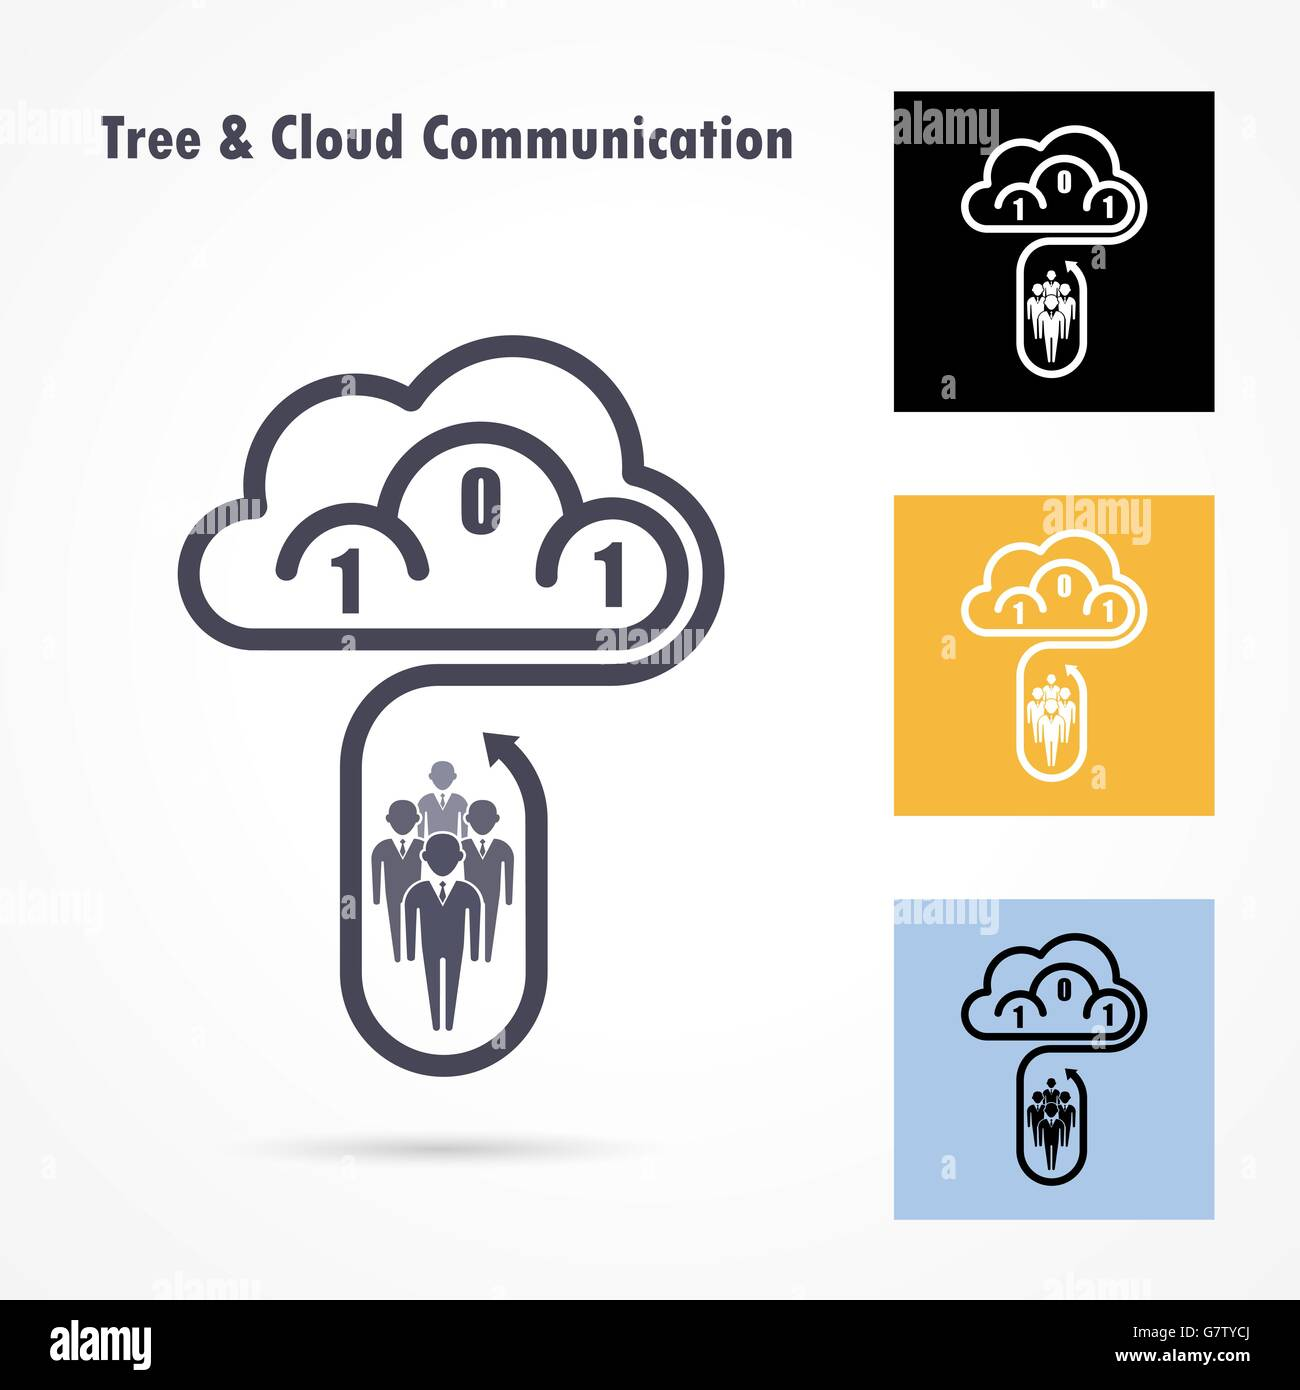 Tree and cloud logo vector design template. Computer and data transfer symbol. Business and technology concept.Vector Stock Vector